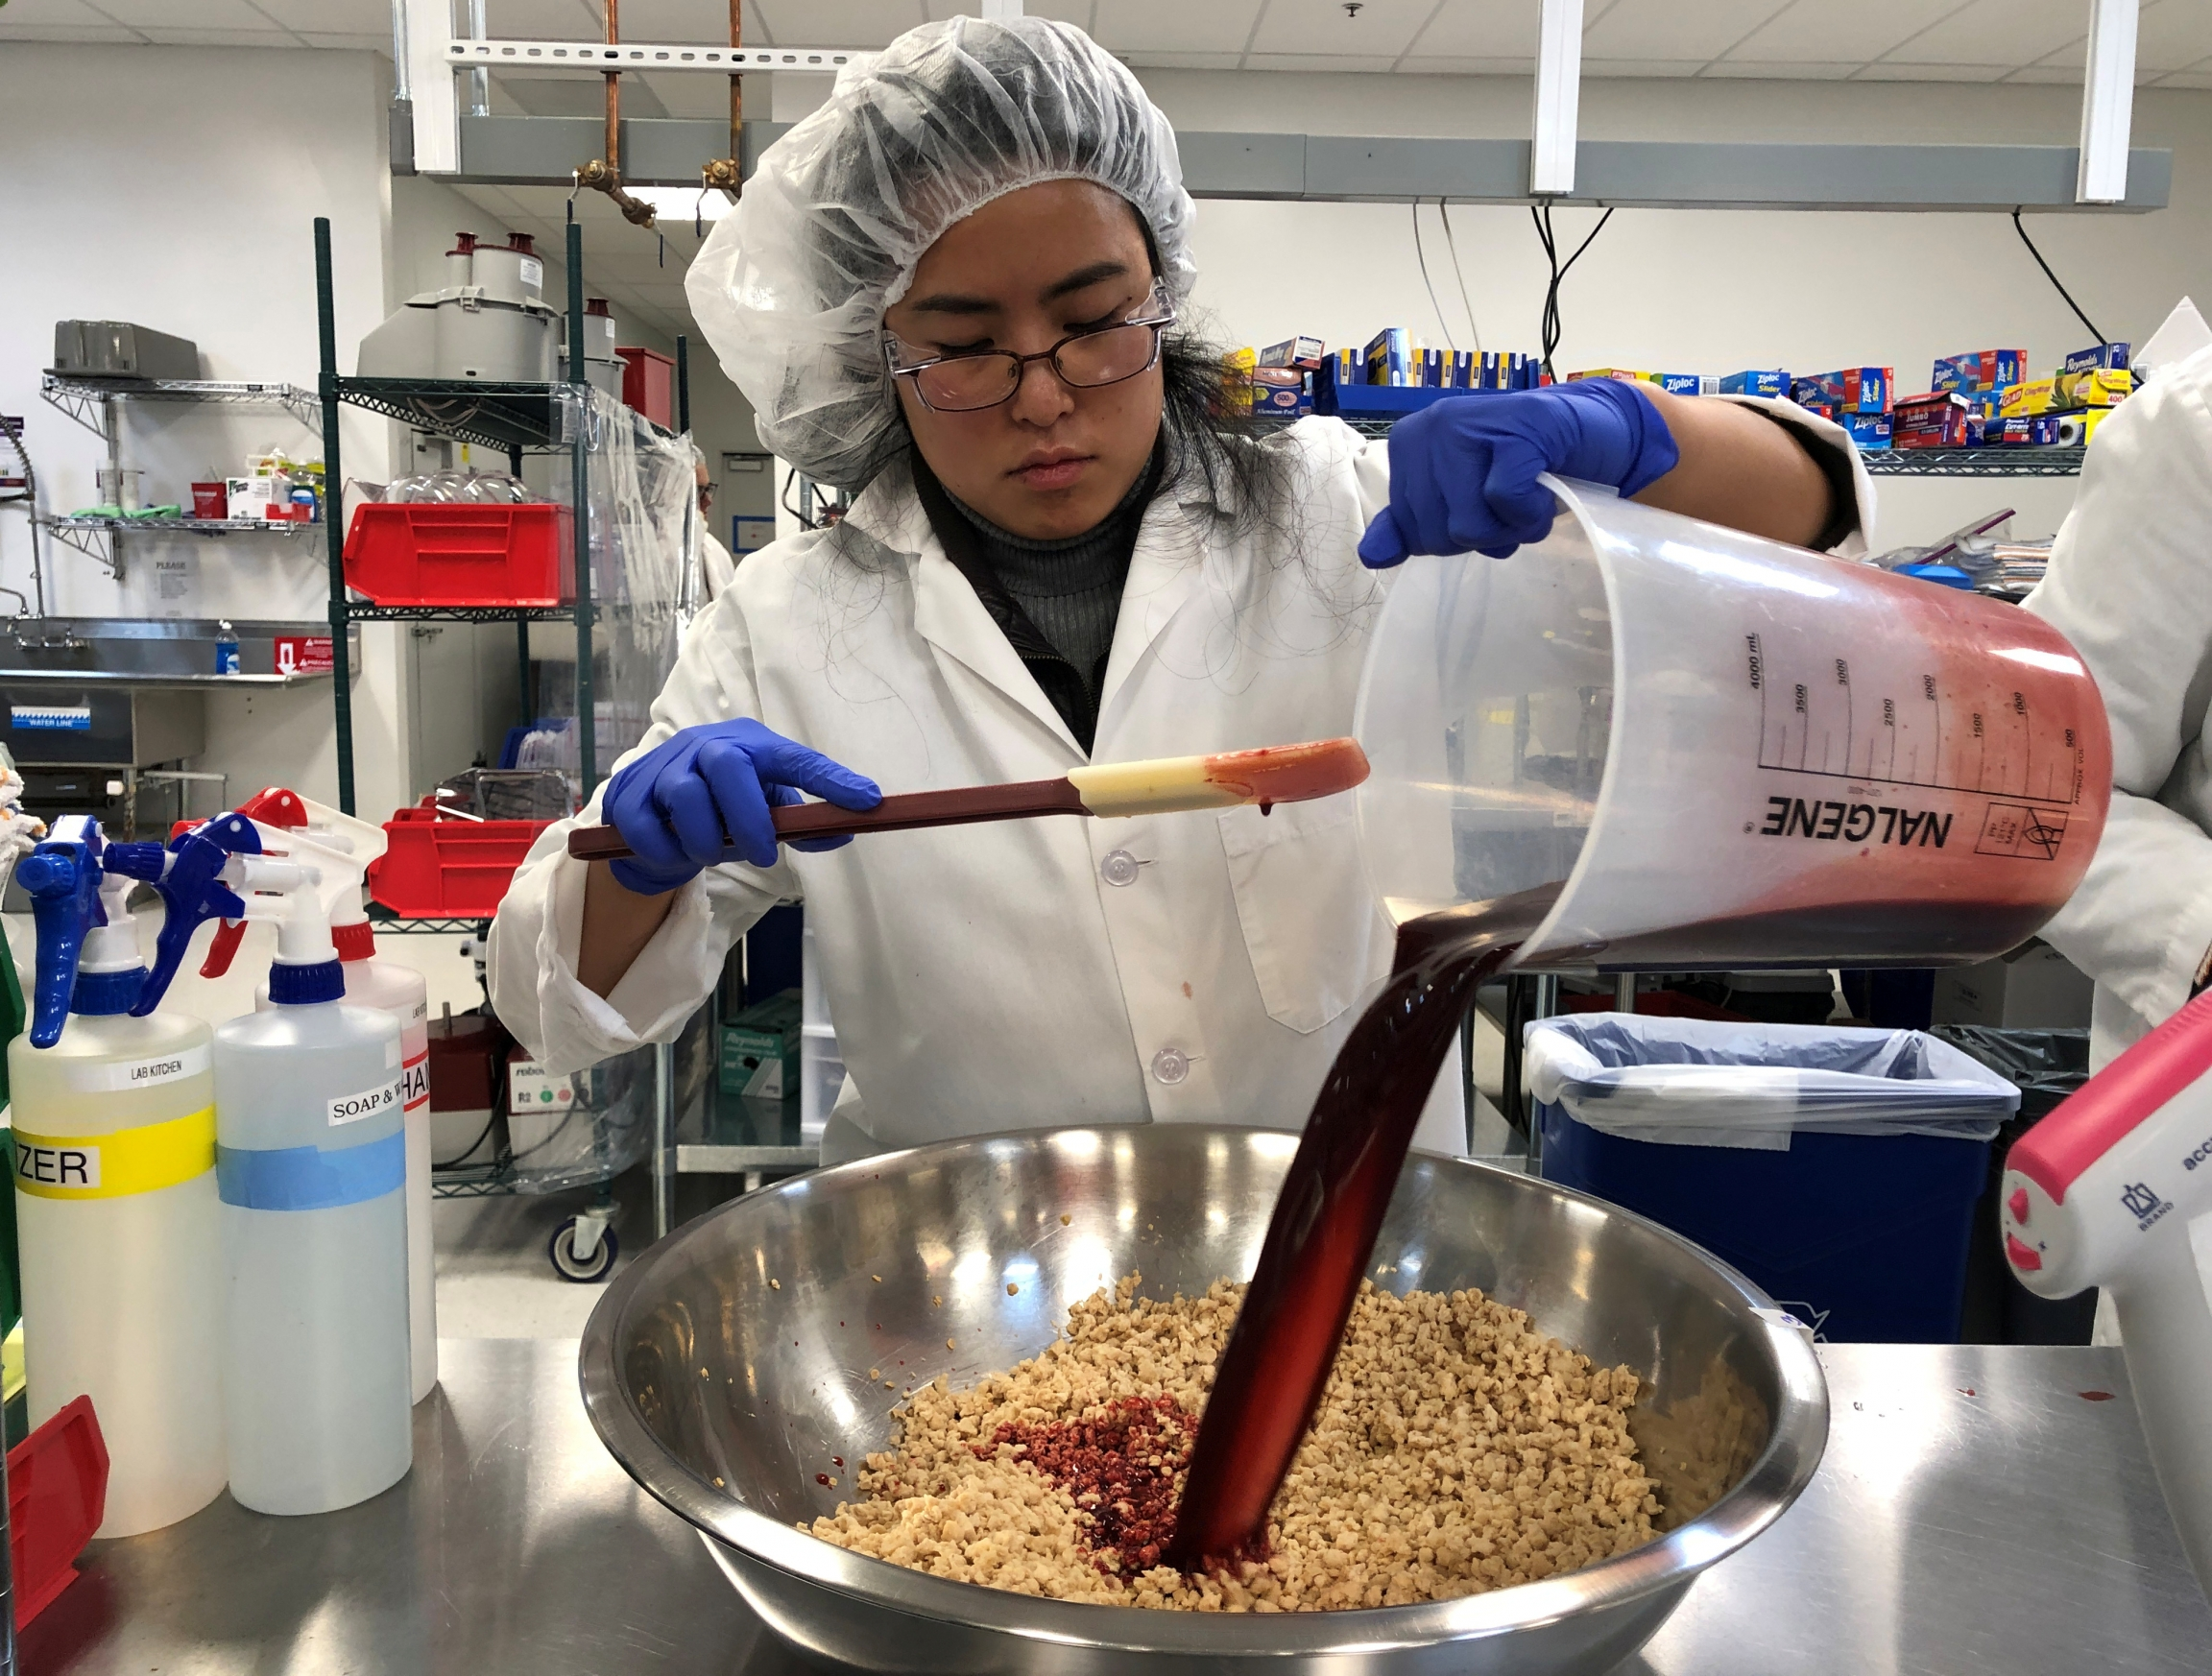 Impossible Foods research technician Alexia Yue pours a heme solution, the key ingredient, into a plant-based mixture for burgers at the company's facility in Redwood City, California.March 26, 2019.